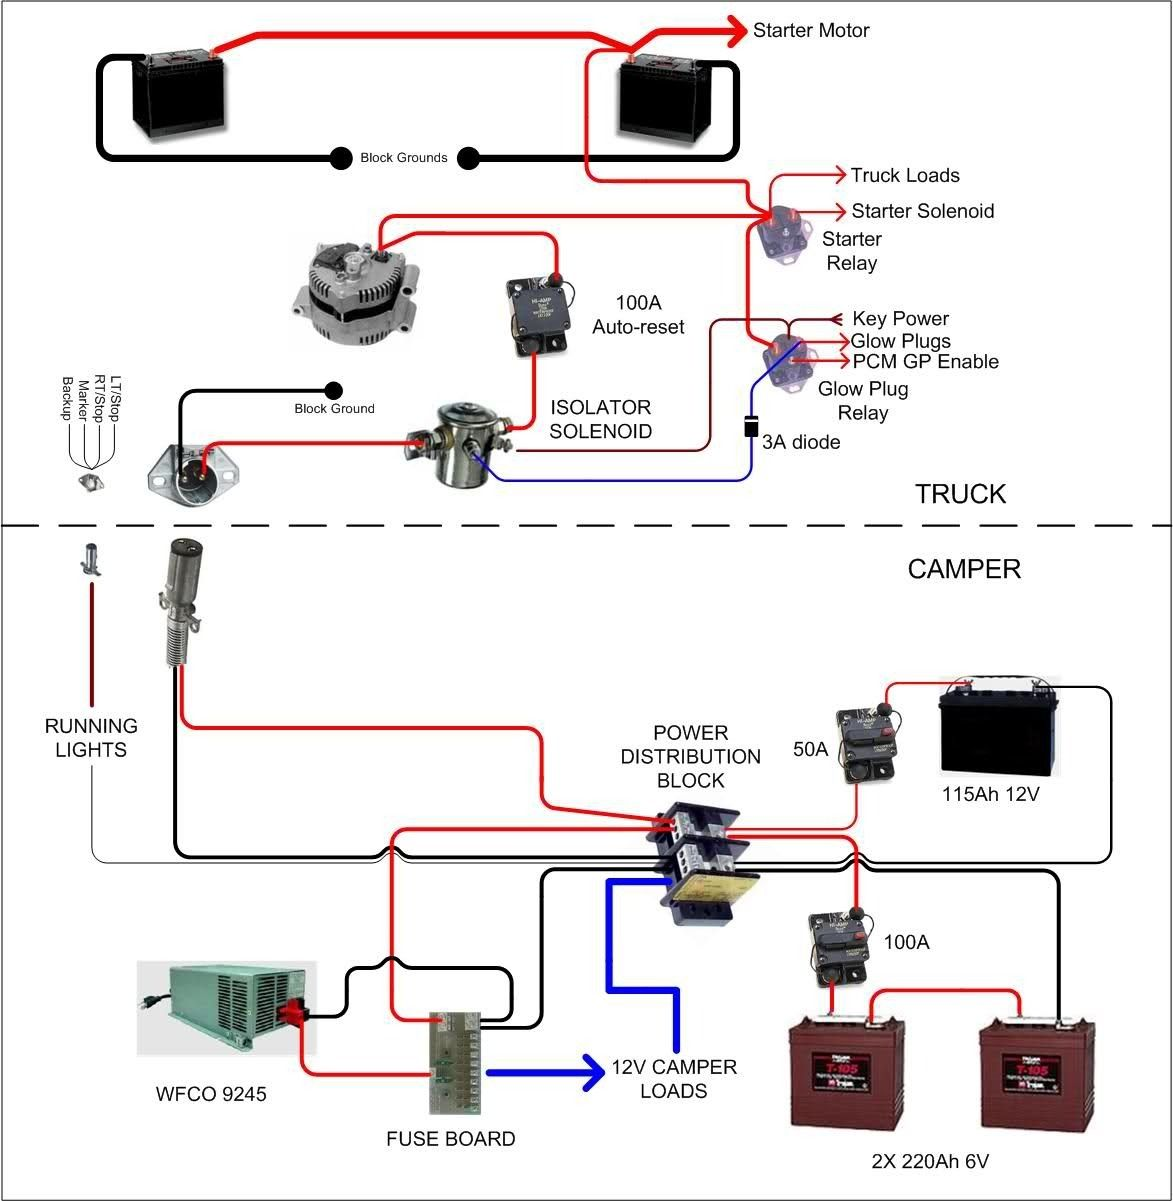 Travel Trailer Converter Wiring Diagram | WiringDiagram.org